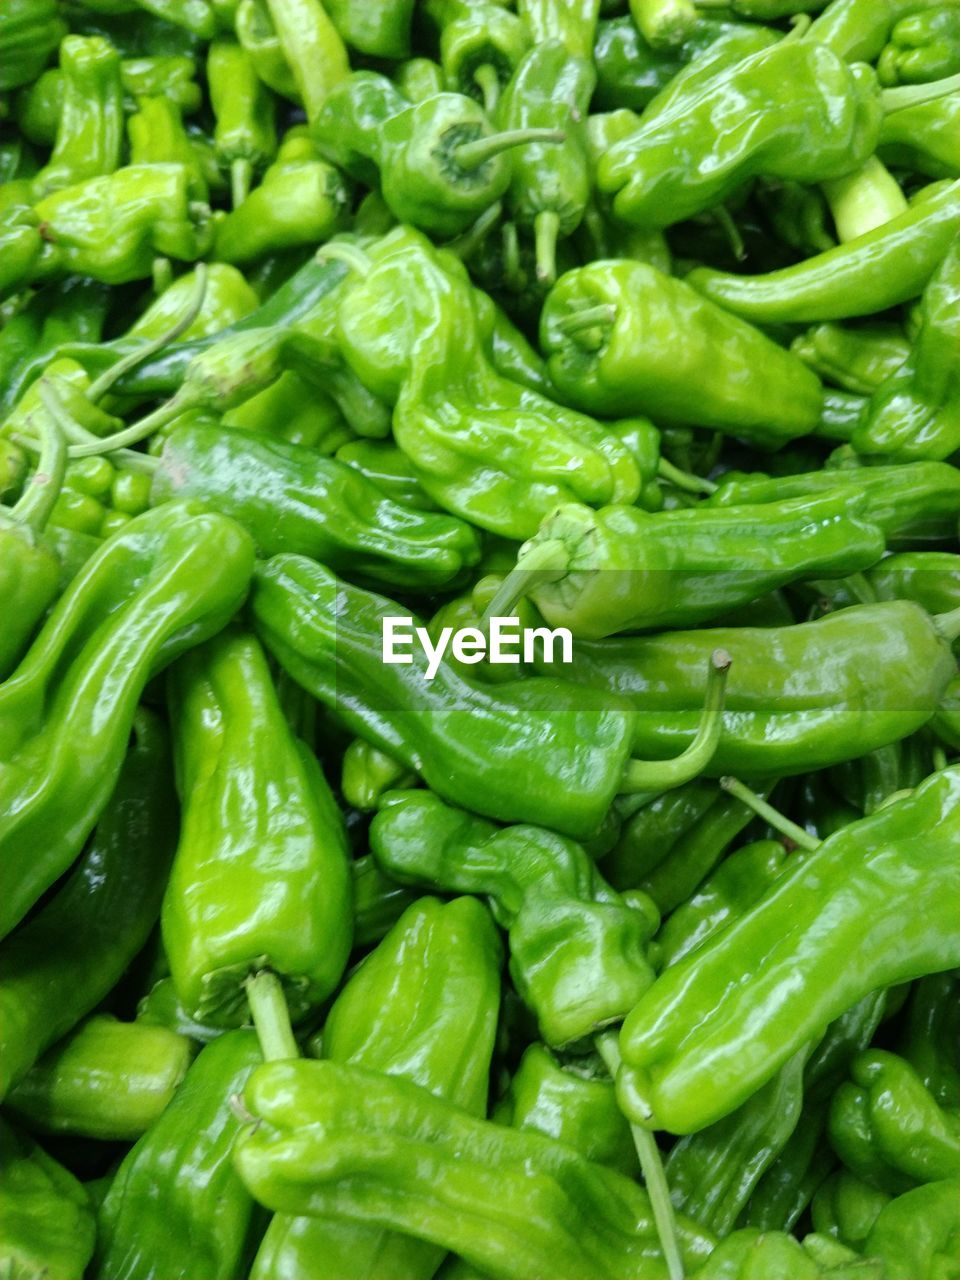 FULL FRAME OF GREEN CHILI PEPPERS